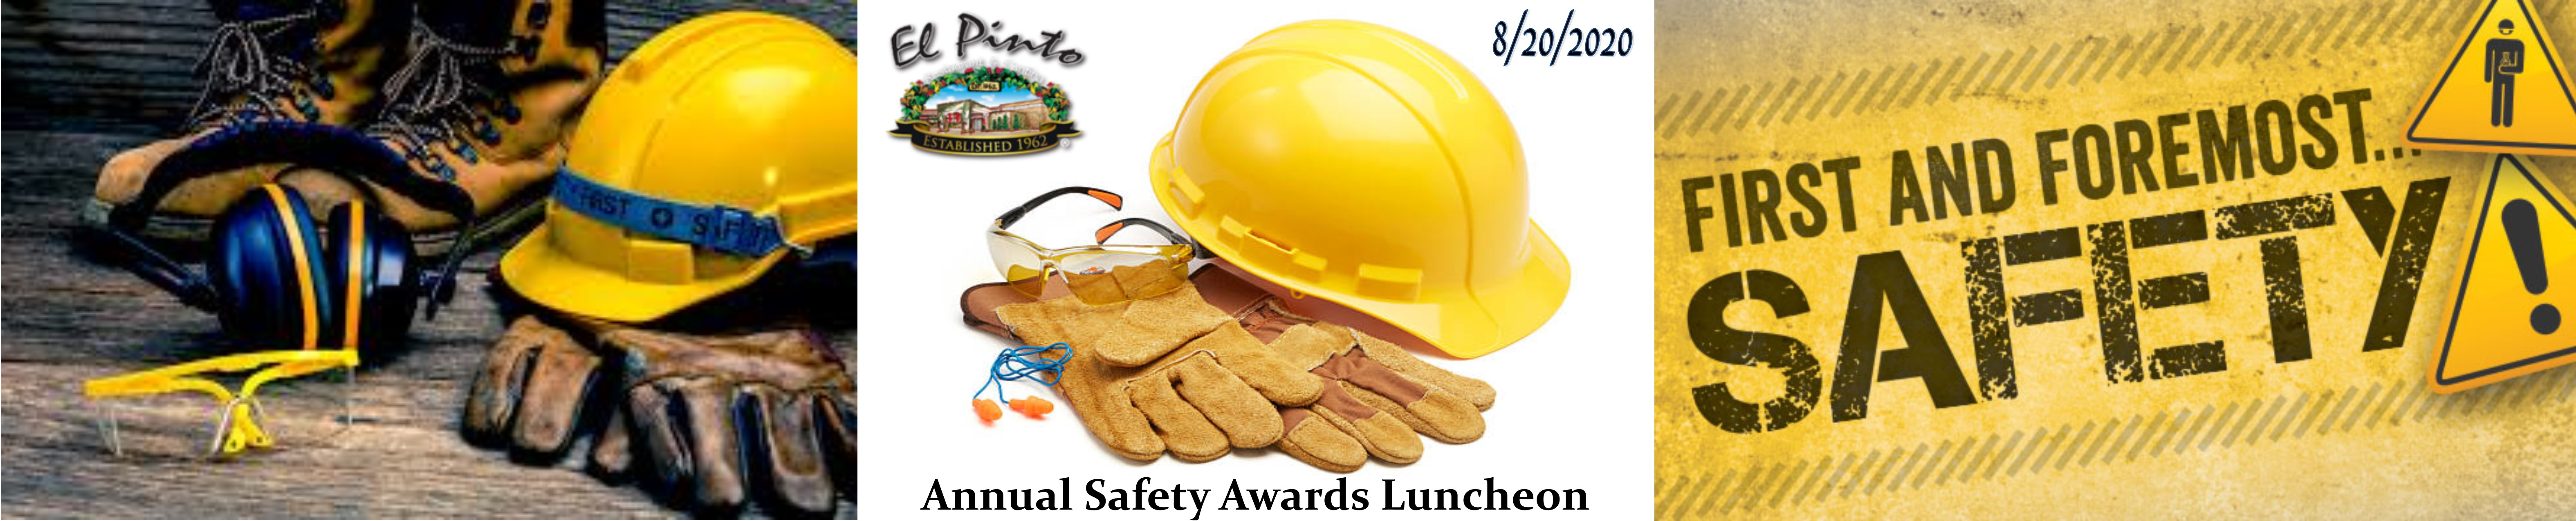 Safety Awards Banner637081824213079370